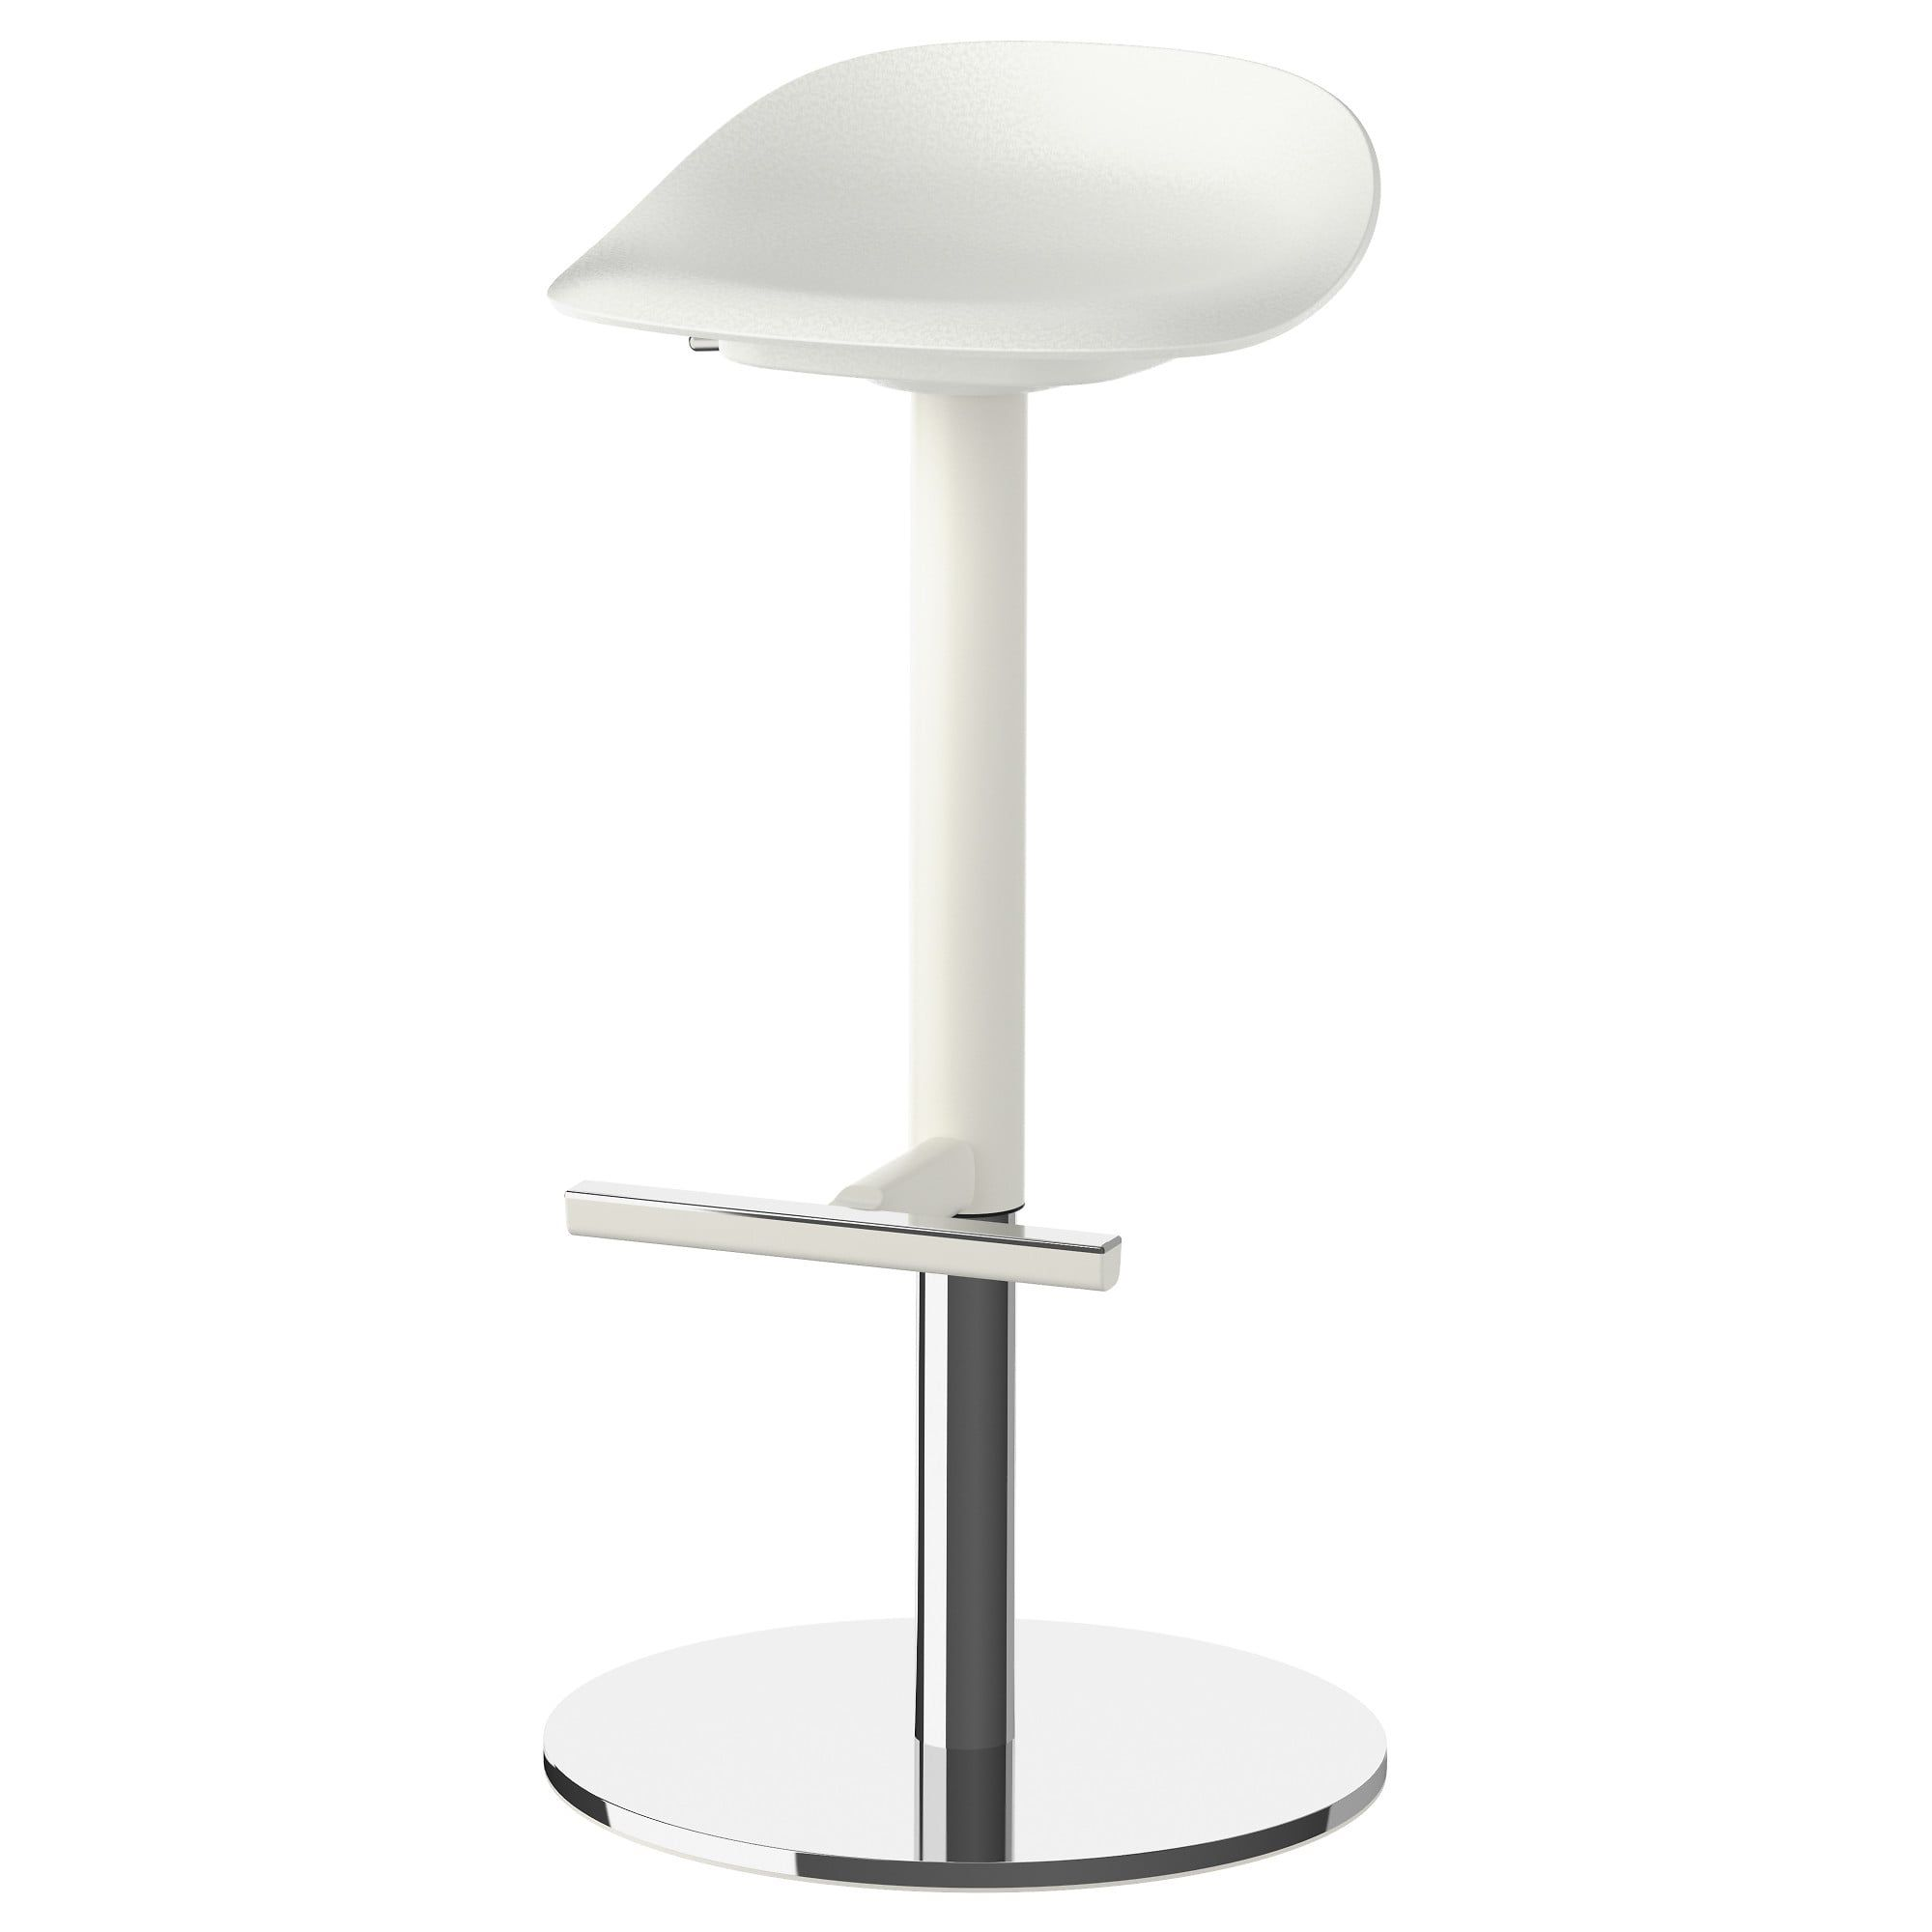 Ikea Janinge Bar Stool White Bar Stools Ikea Barstools Stool